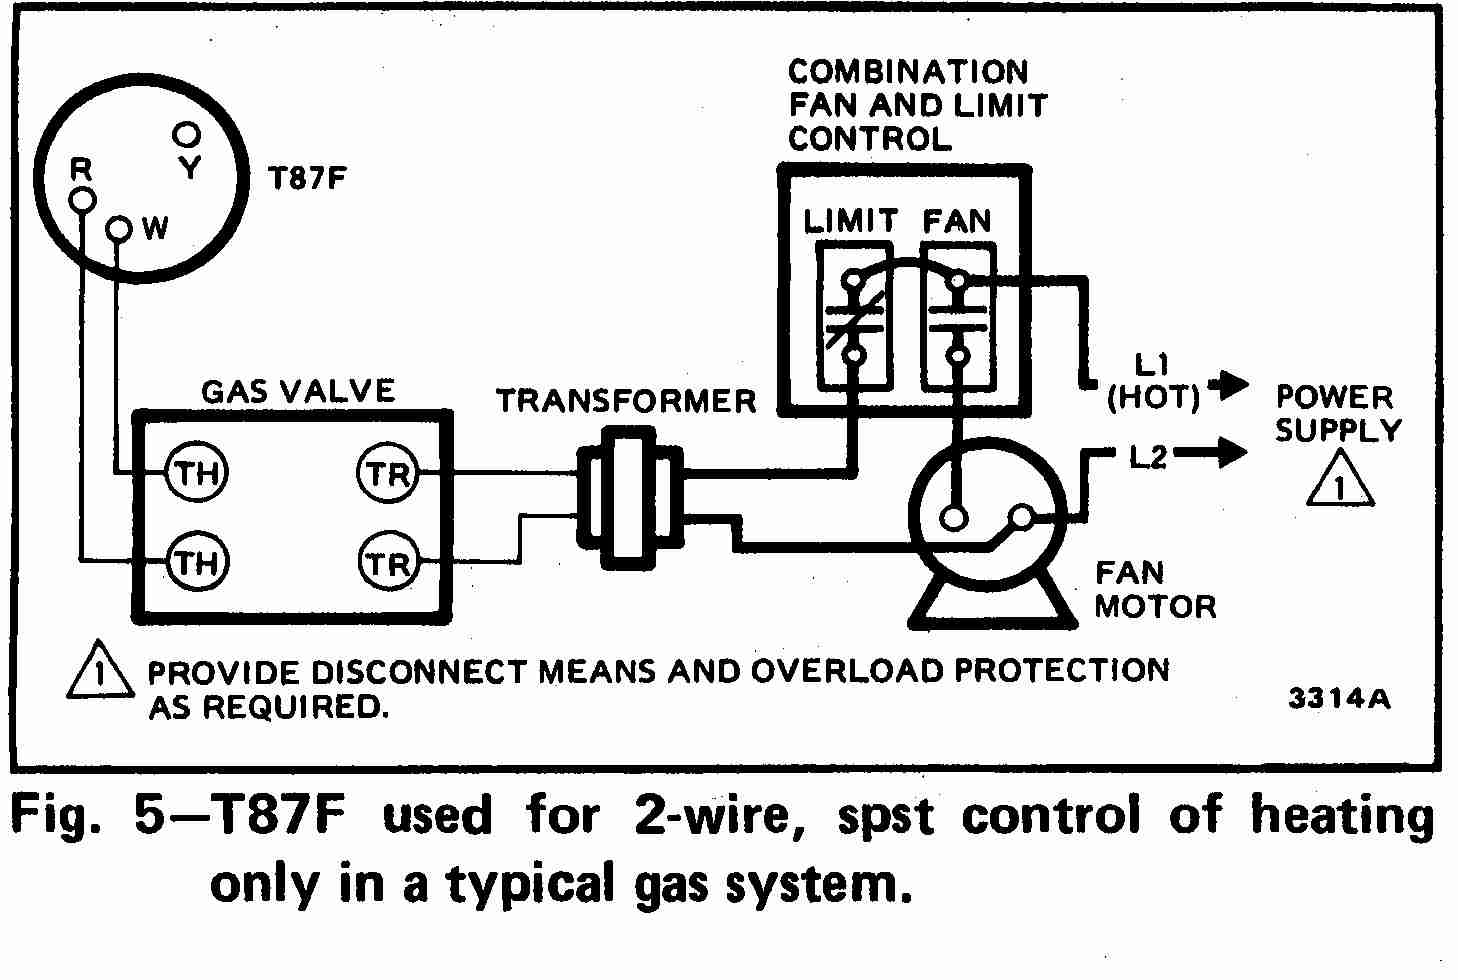 Analog Thermostat Wiring Diagram Fuse Box Coleman Guide To Connections For Room Thermostats Rh Inspectapedia Com Dometic